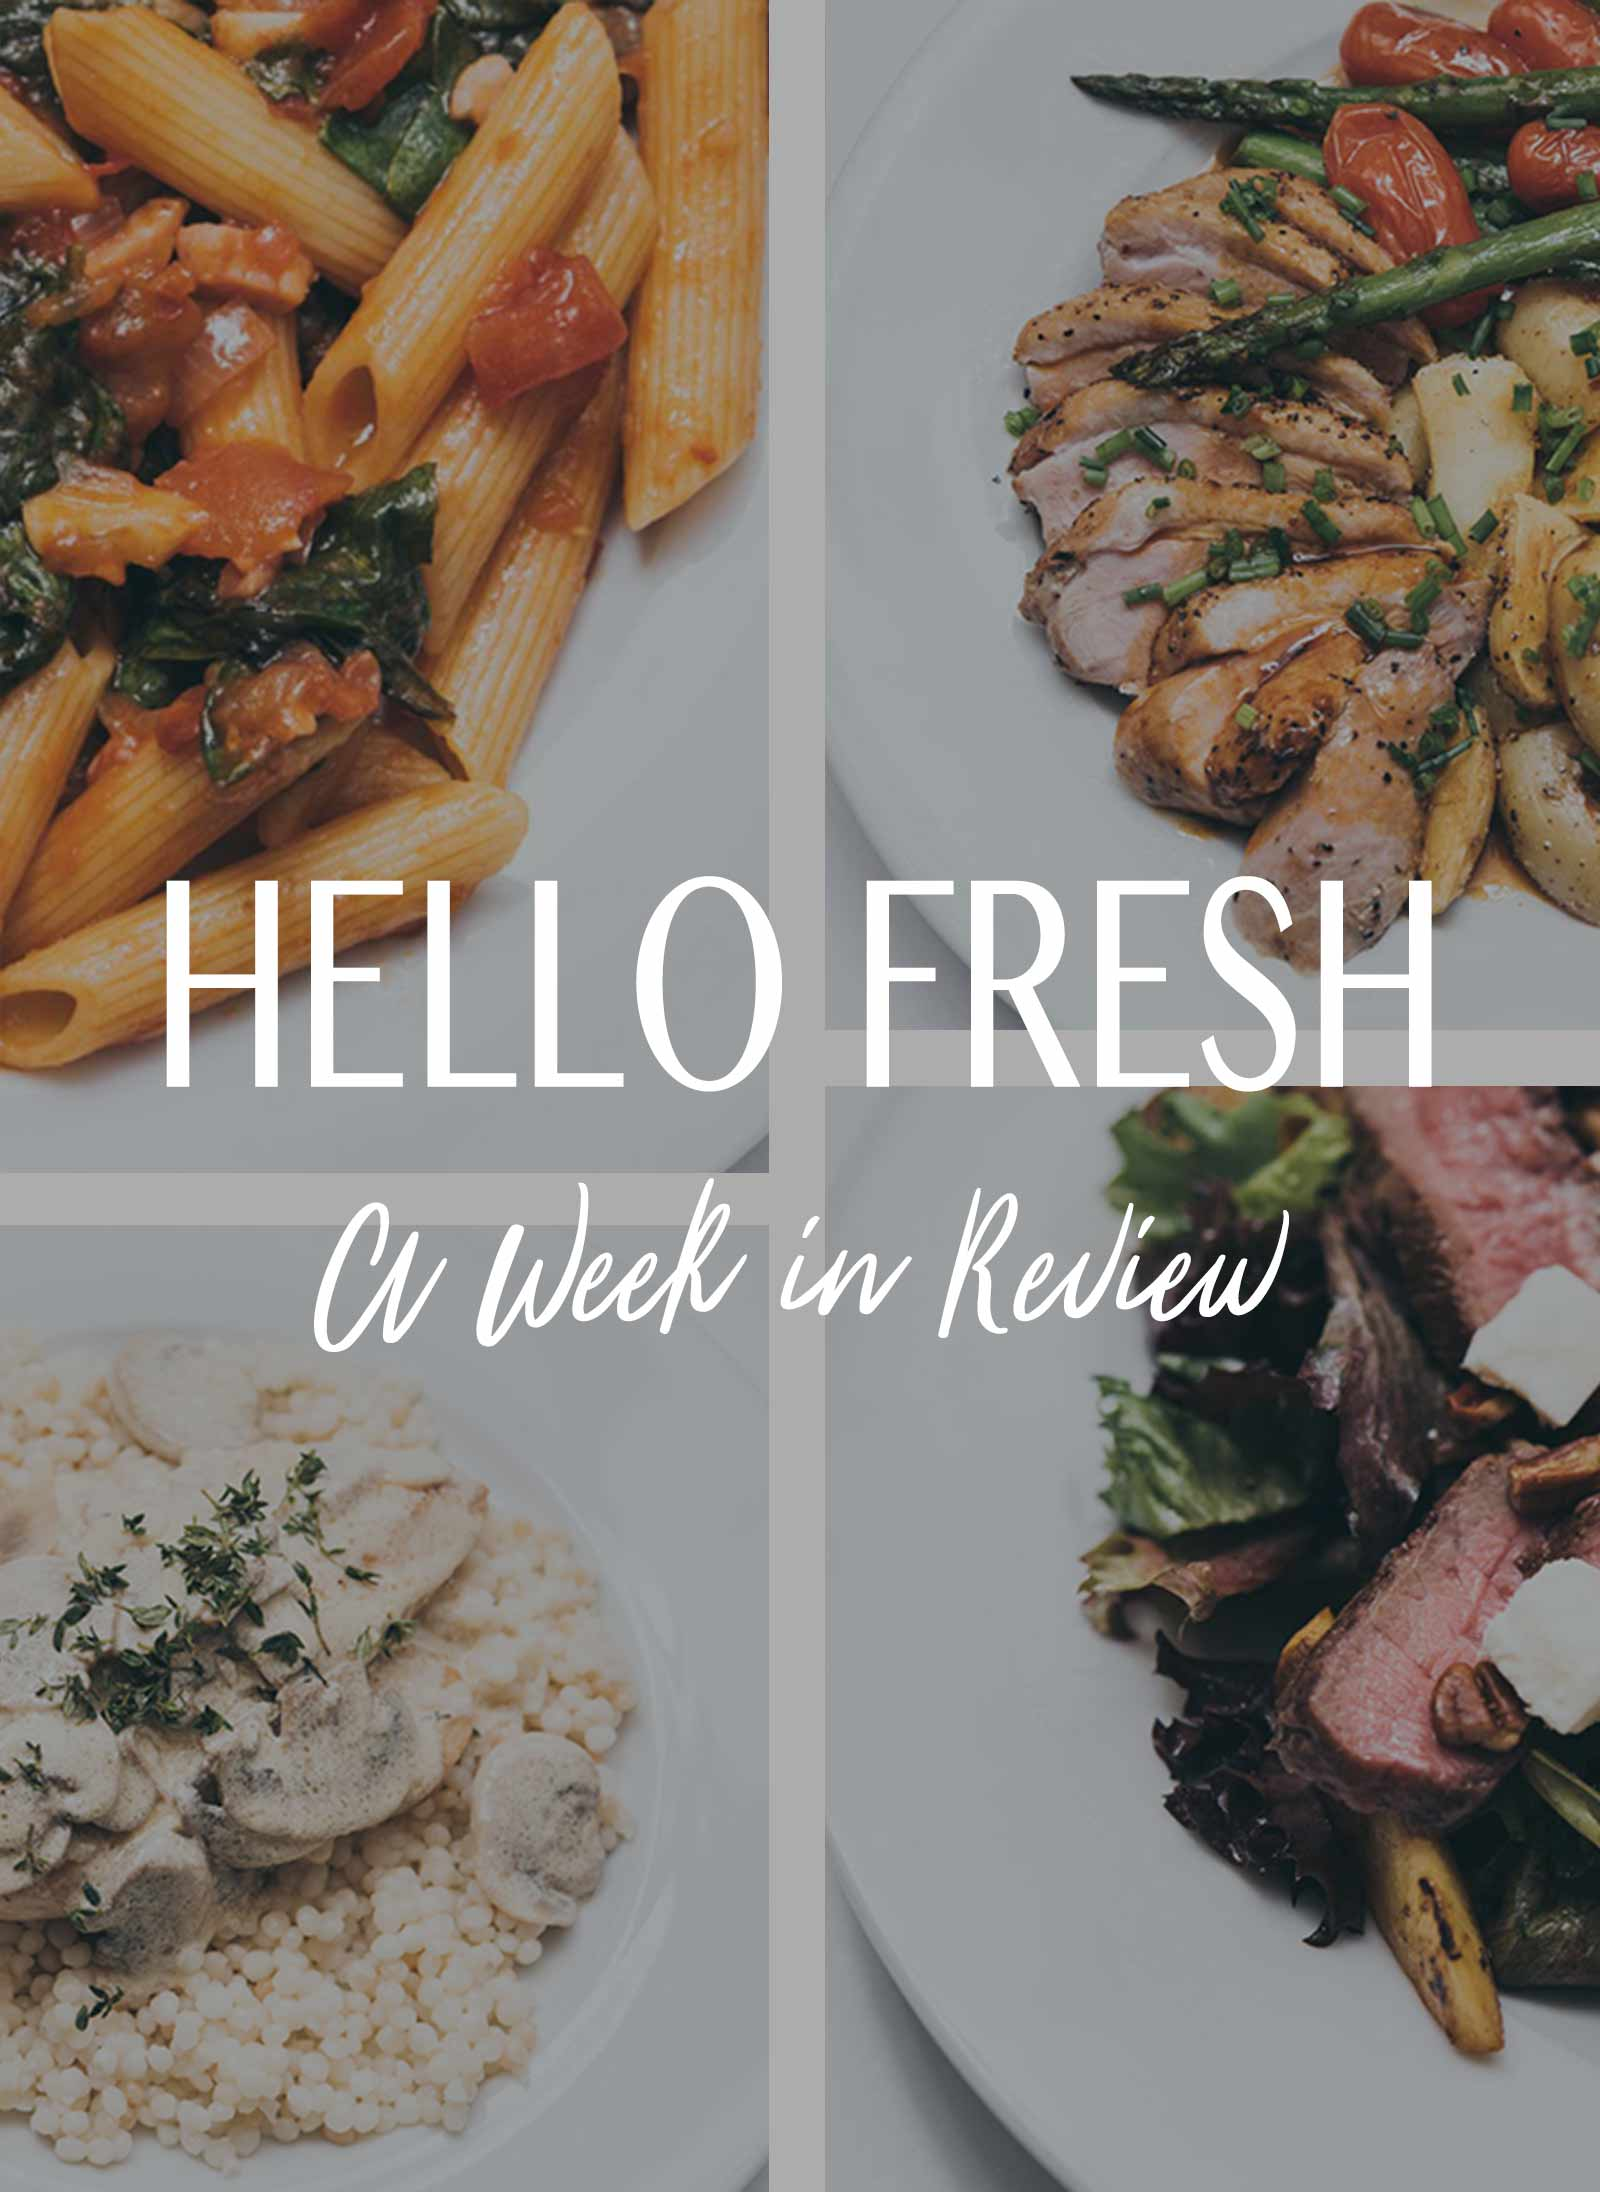 Best Buy Refurbished Meal Kit Delivery Service Hellofresh